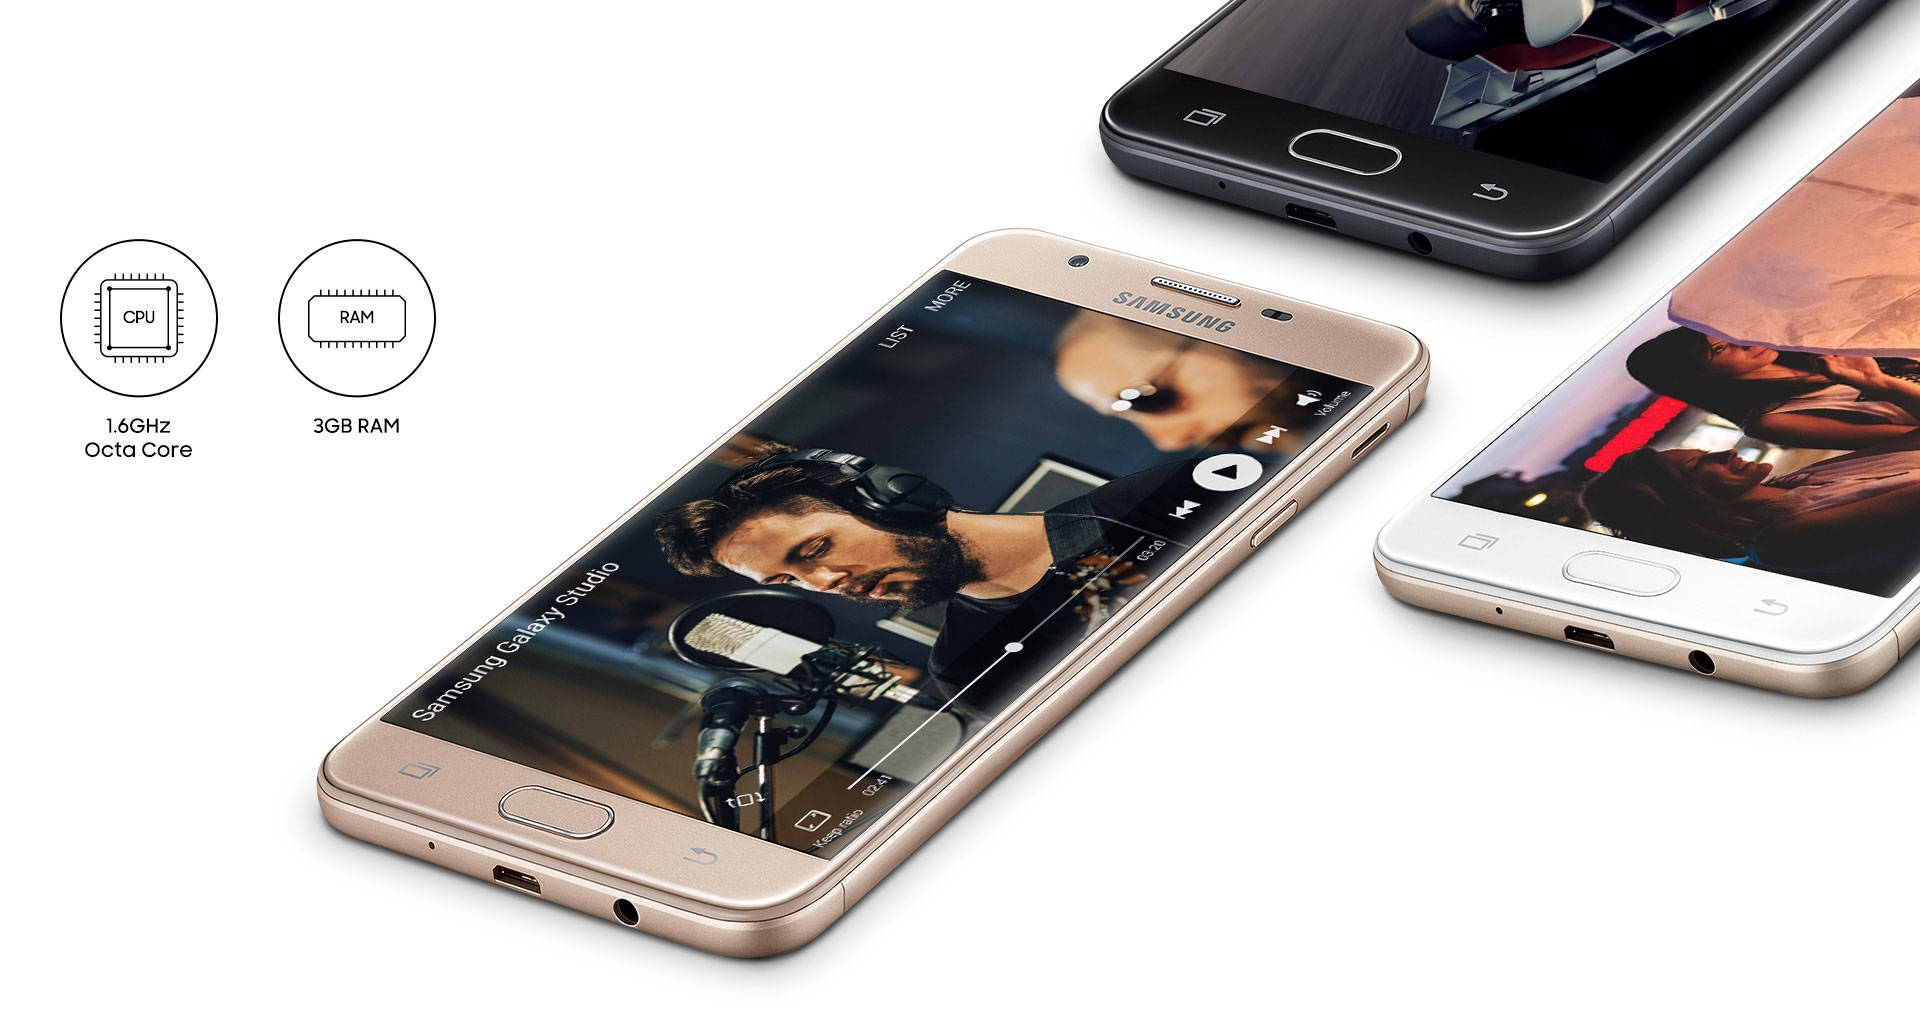 Samsung galaxy j7 prime with fast processor